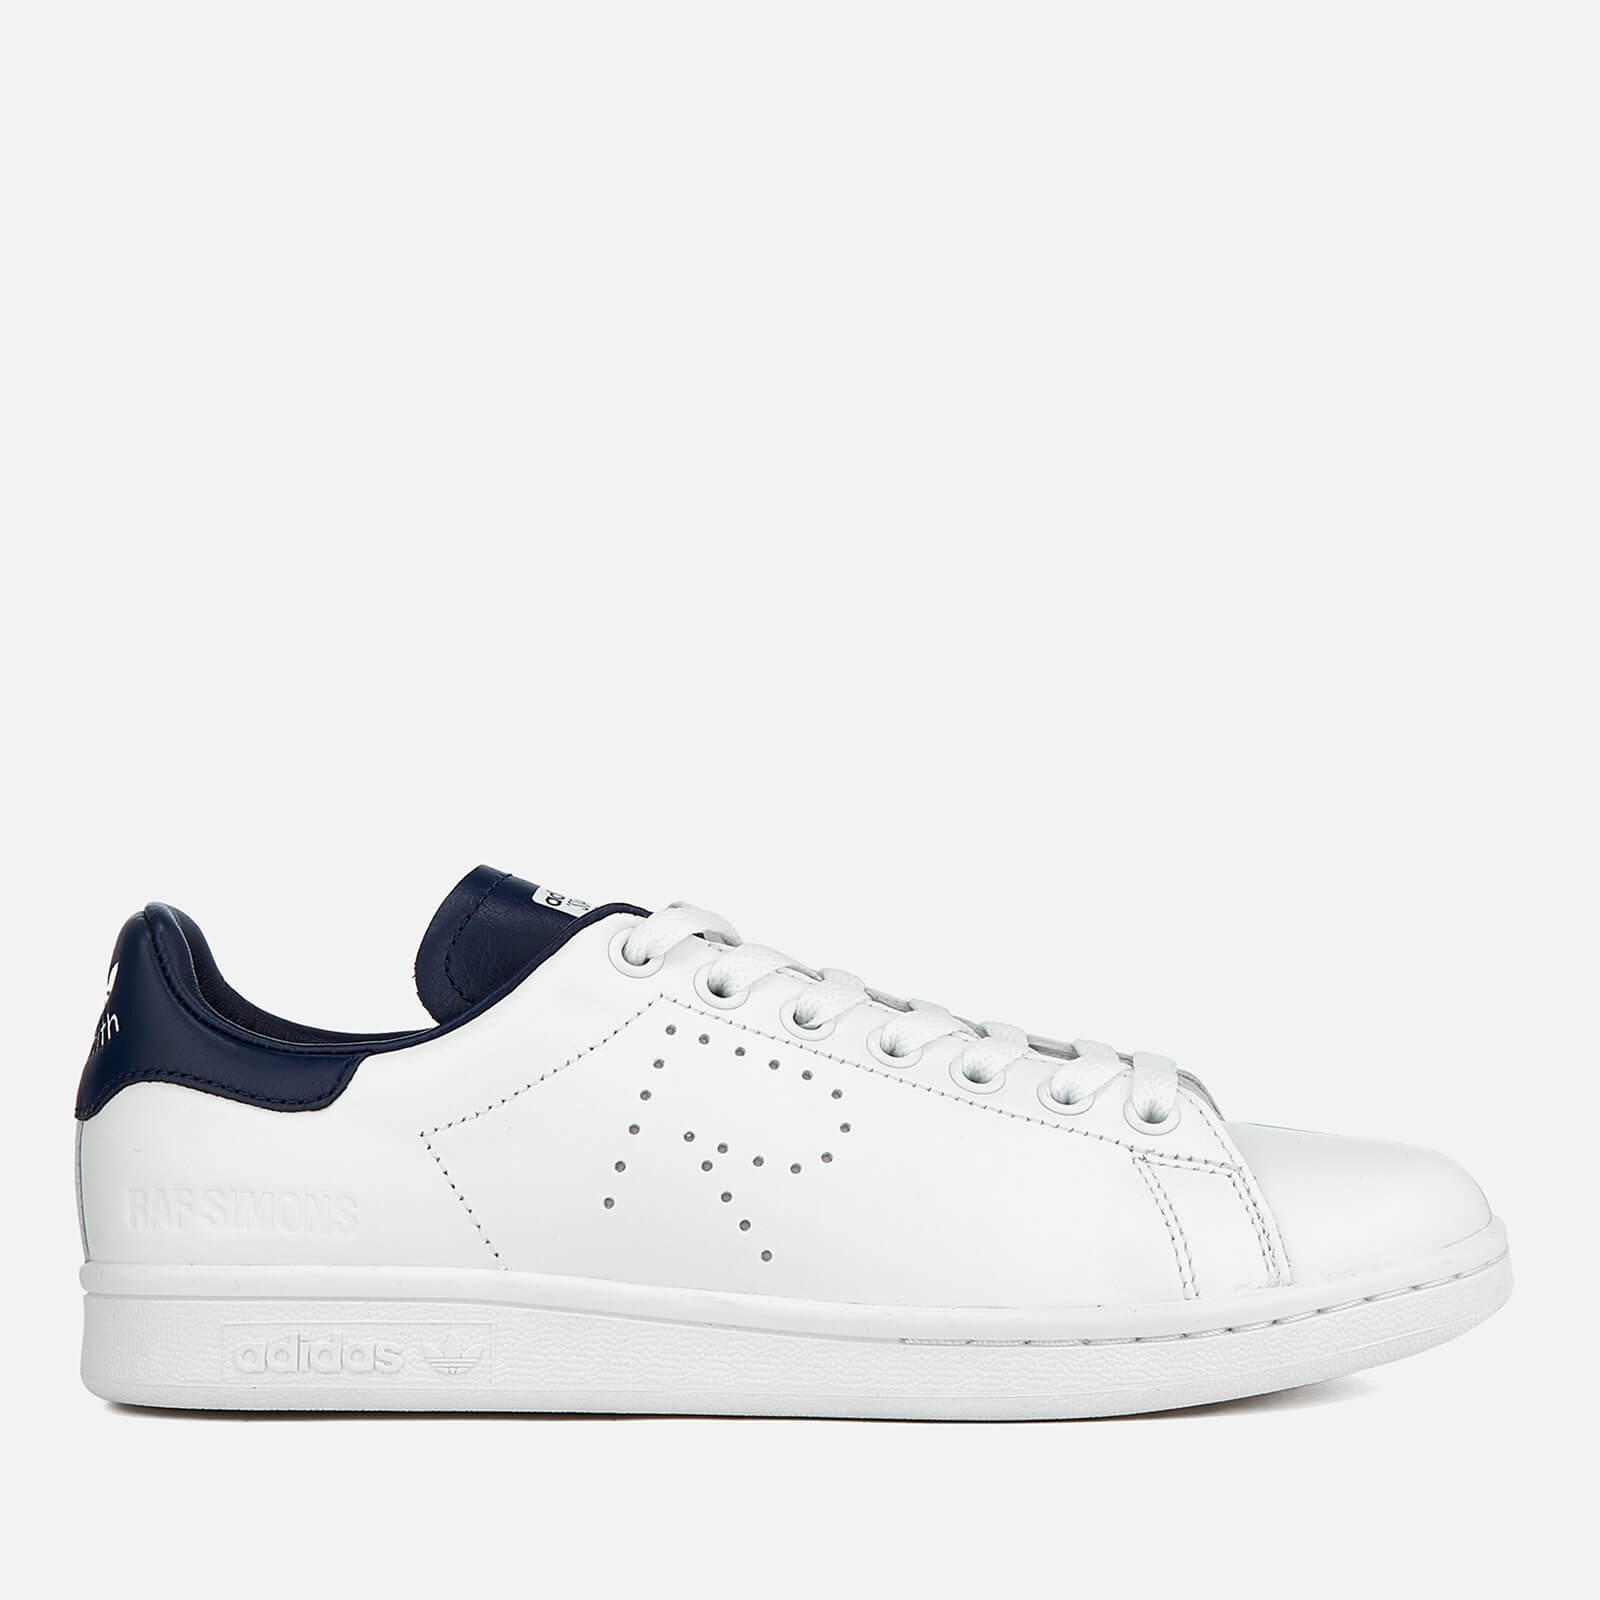 cheaper 502c7 096ba adidas by Raf Simons Stan Smith Trainers - FTW White Night Sky - Free UK  Delivery over £50